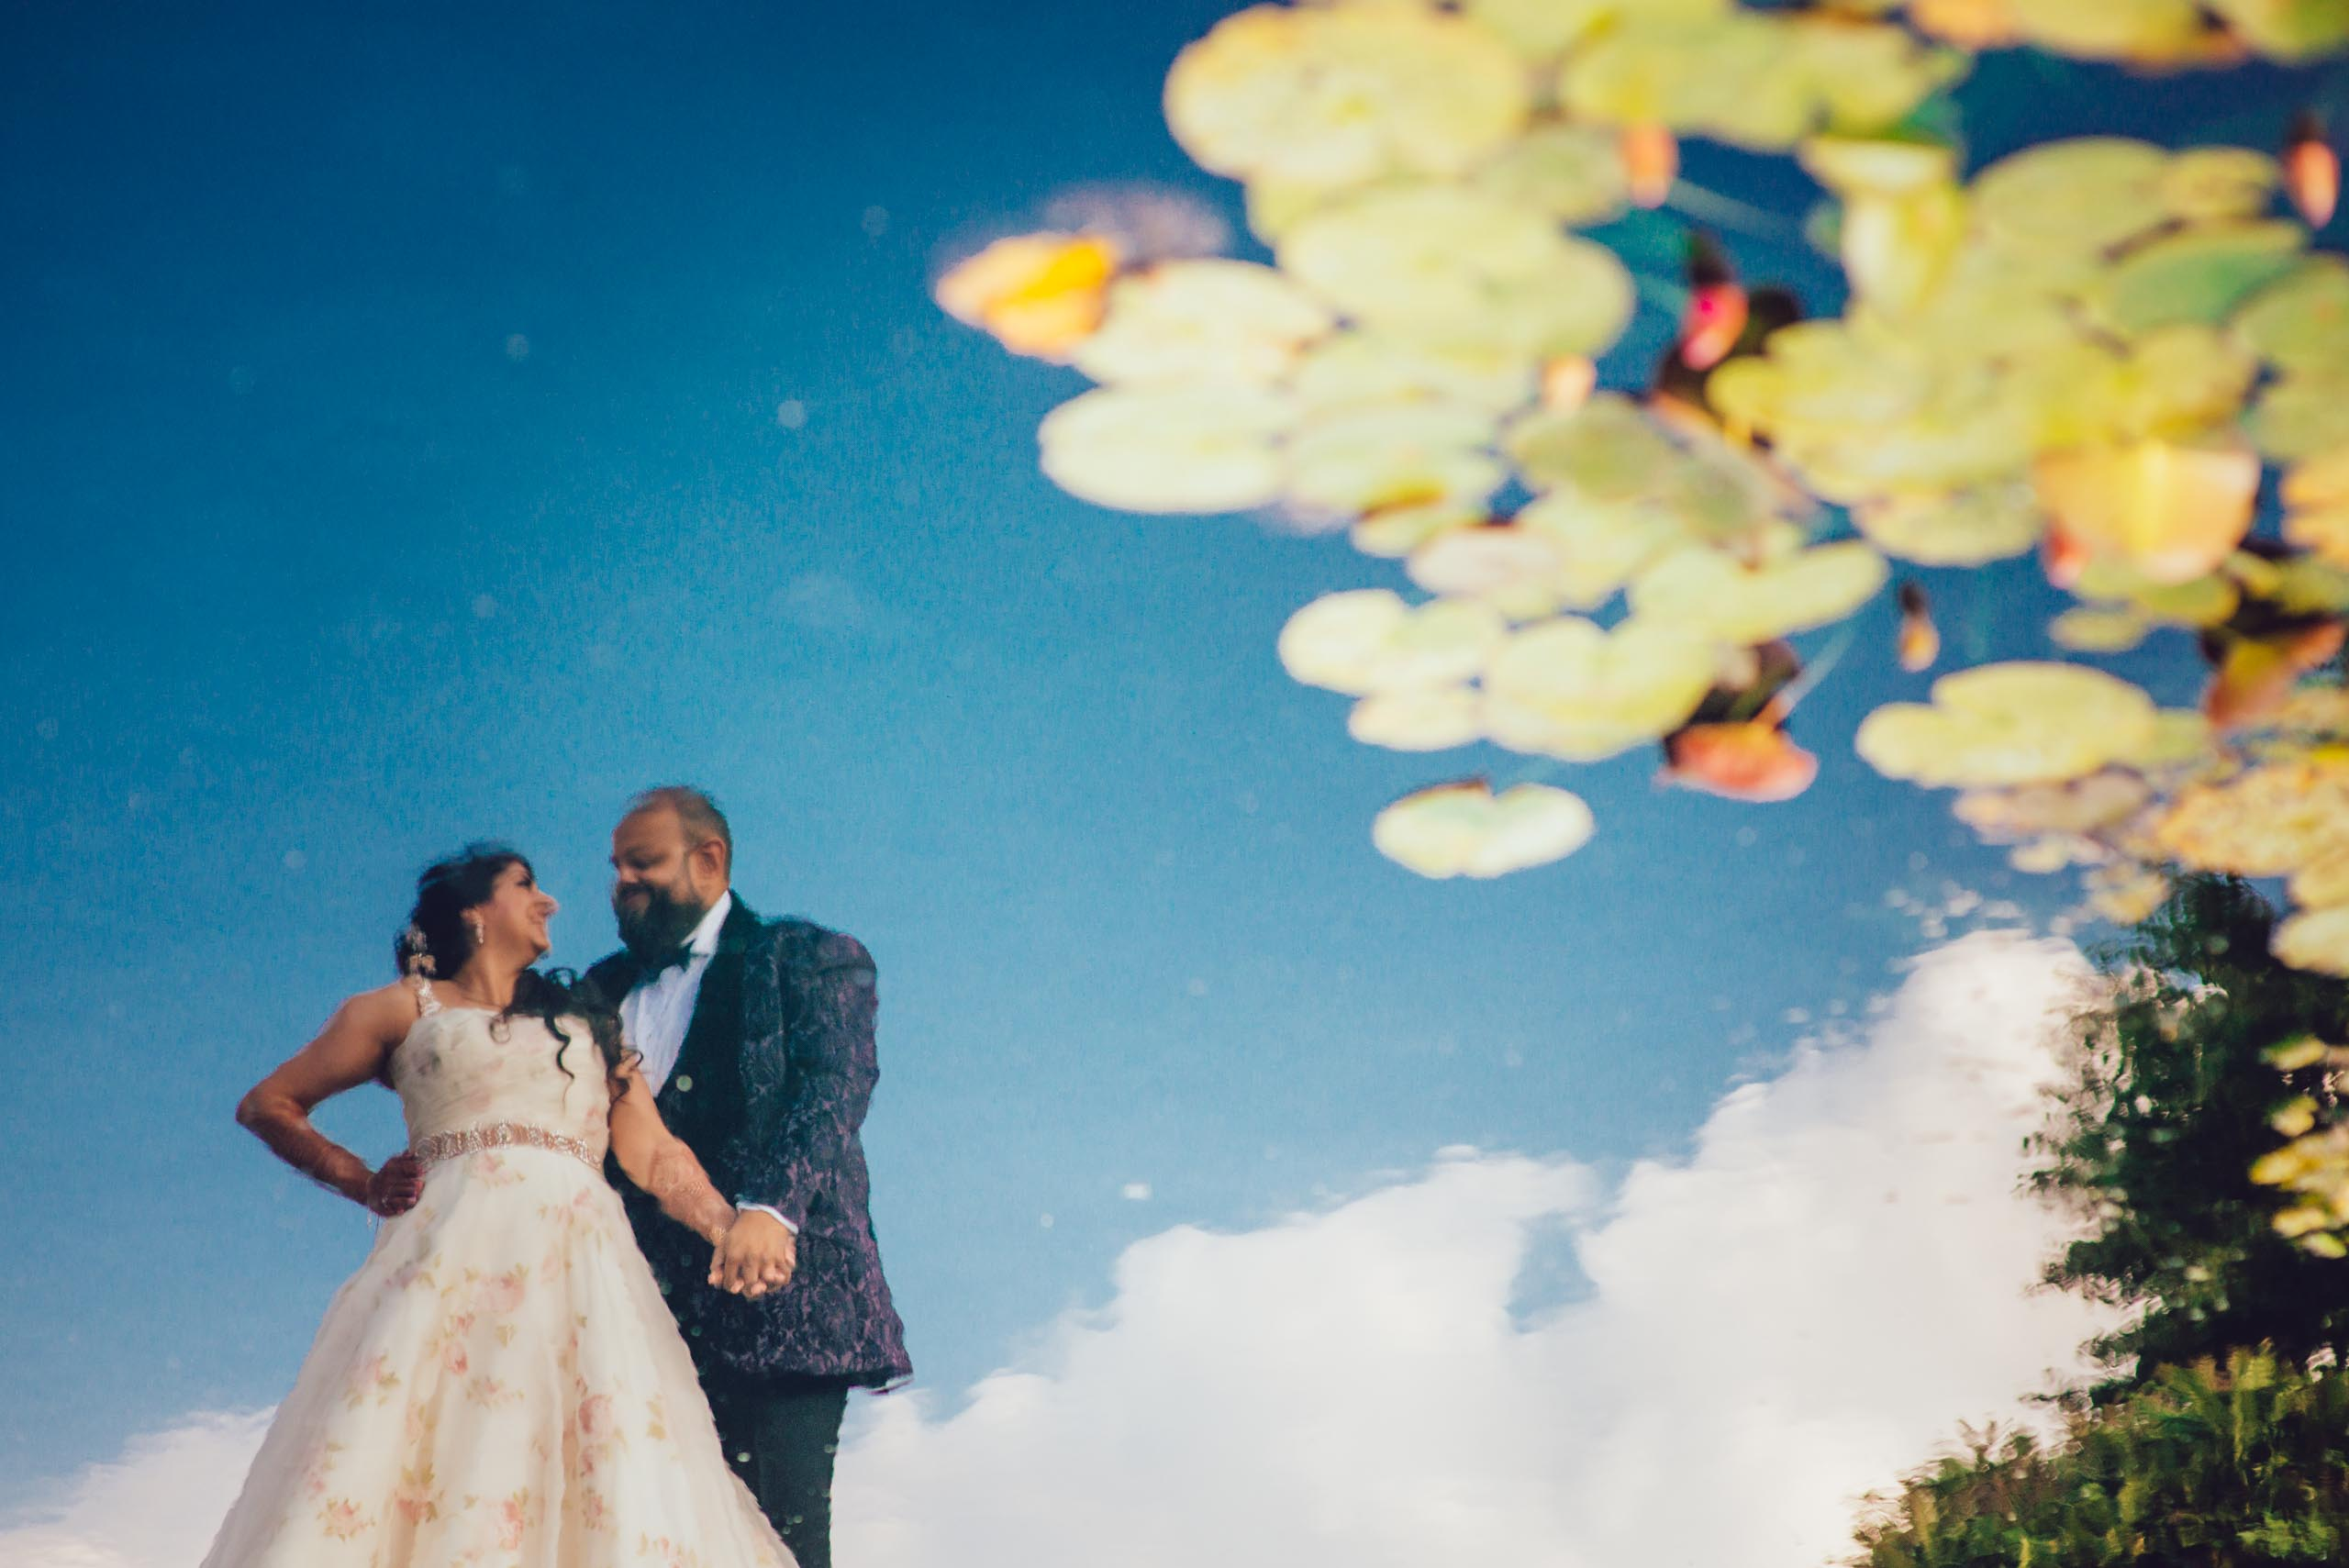 Amit&Amee-preview-edenmoments-17